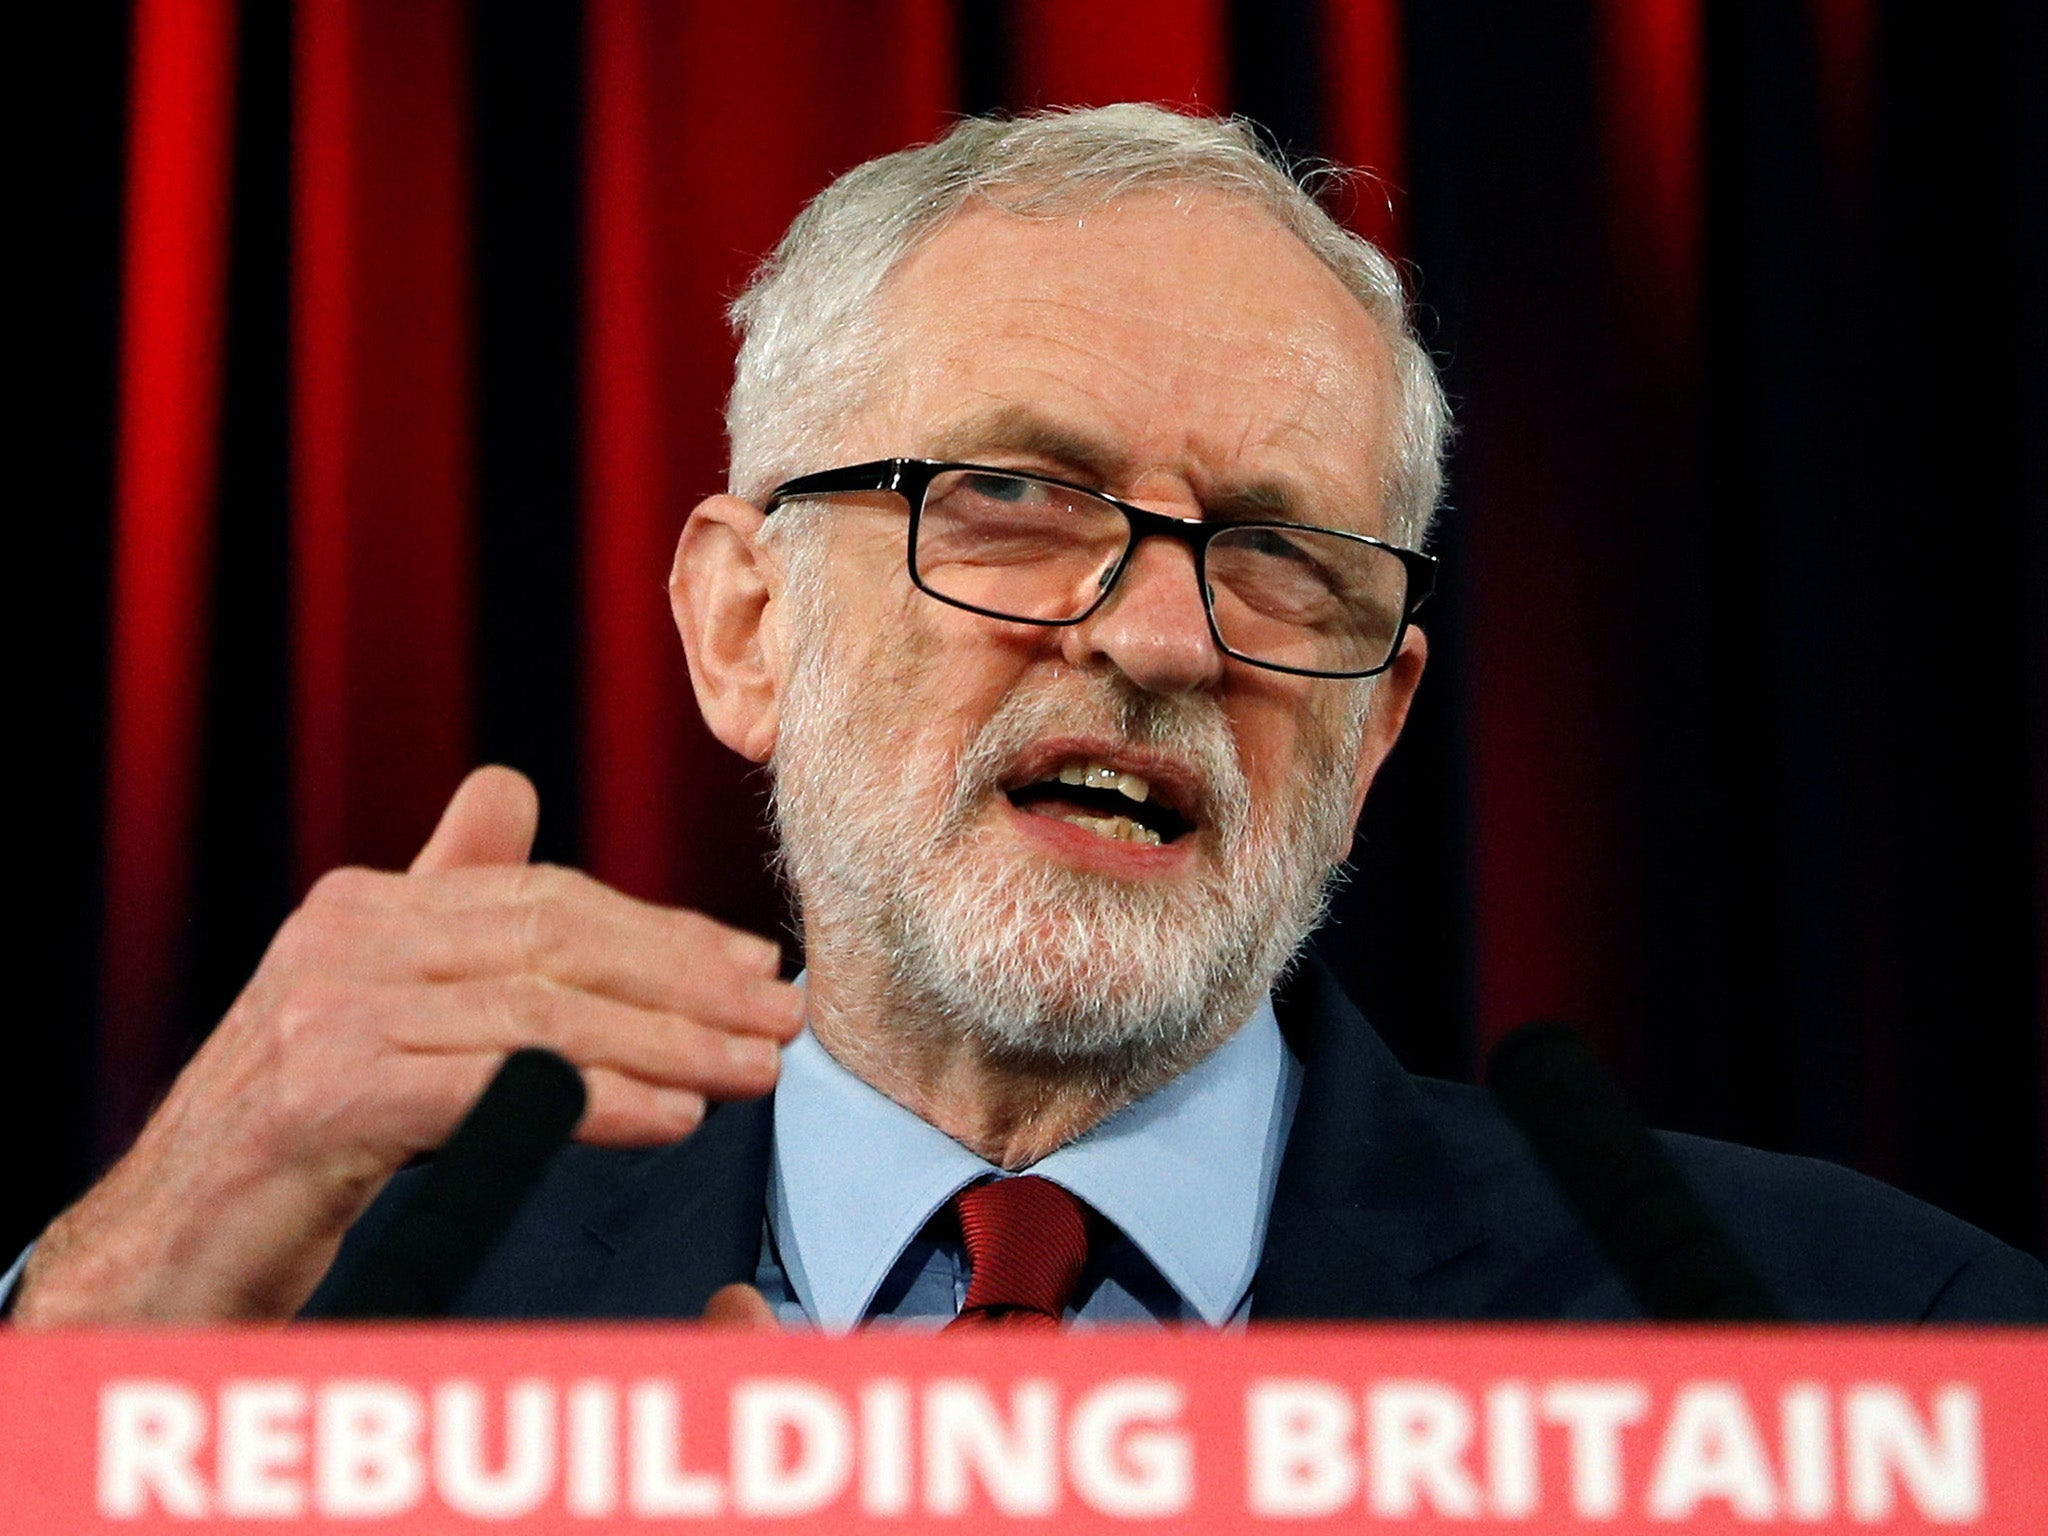 Labour denies reports it has lost 150,000 members over Brexit stance